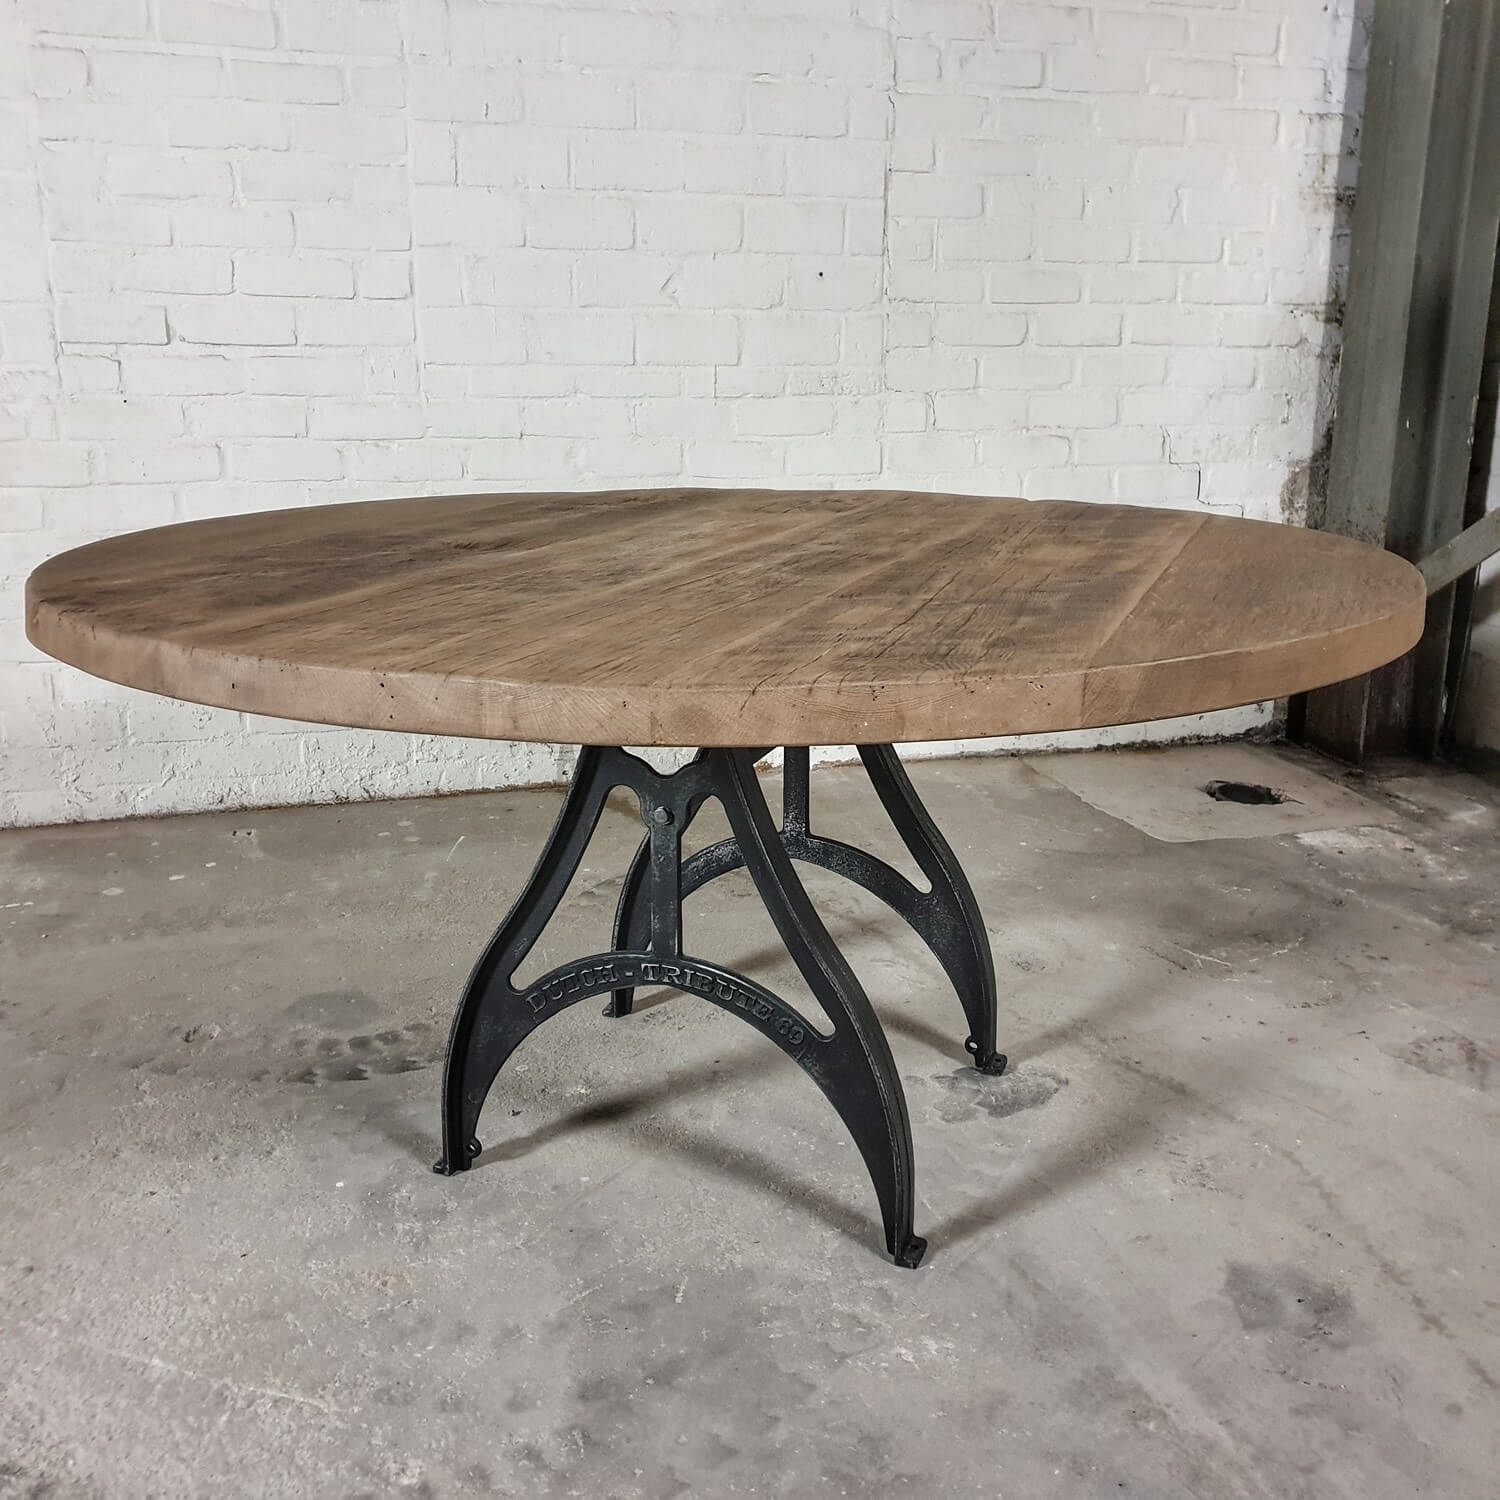 Round Industrial Dining Table Reclaimed Sunburned Oak Cast Iron Base Dt69